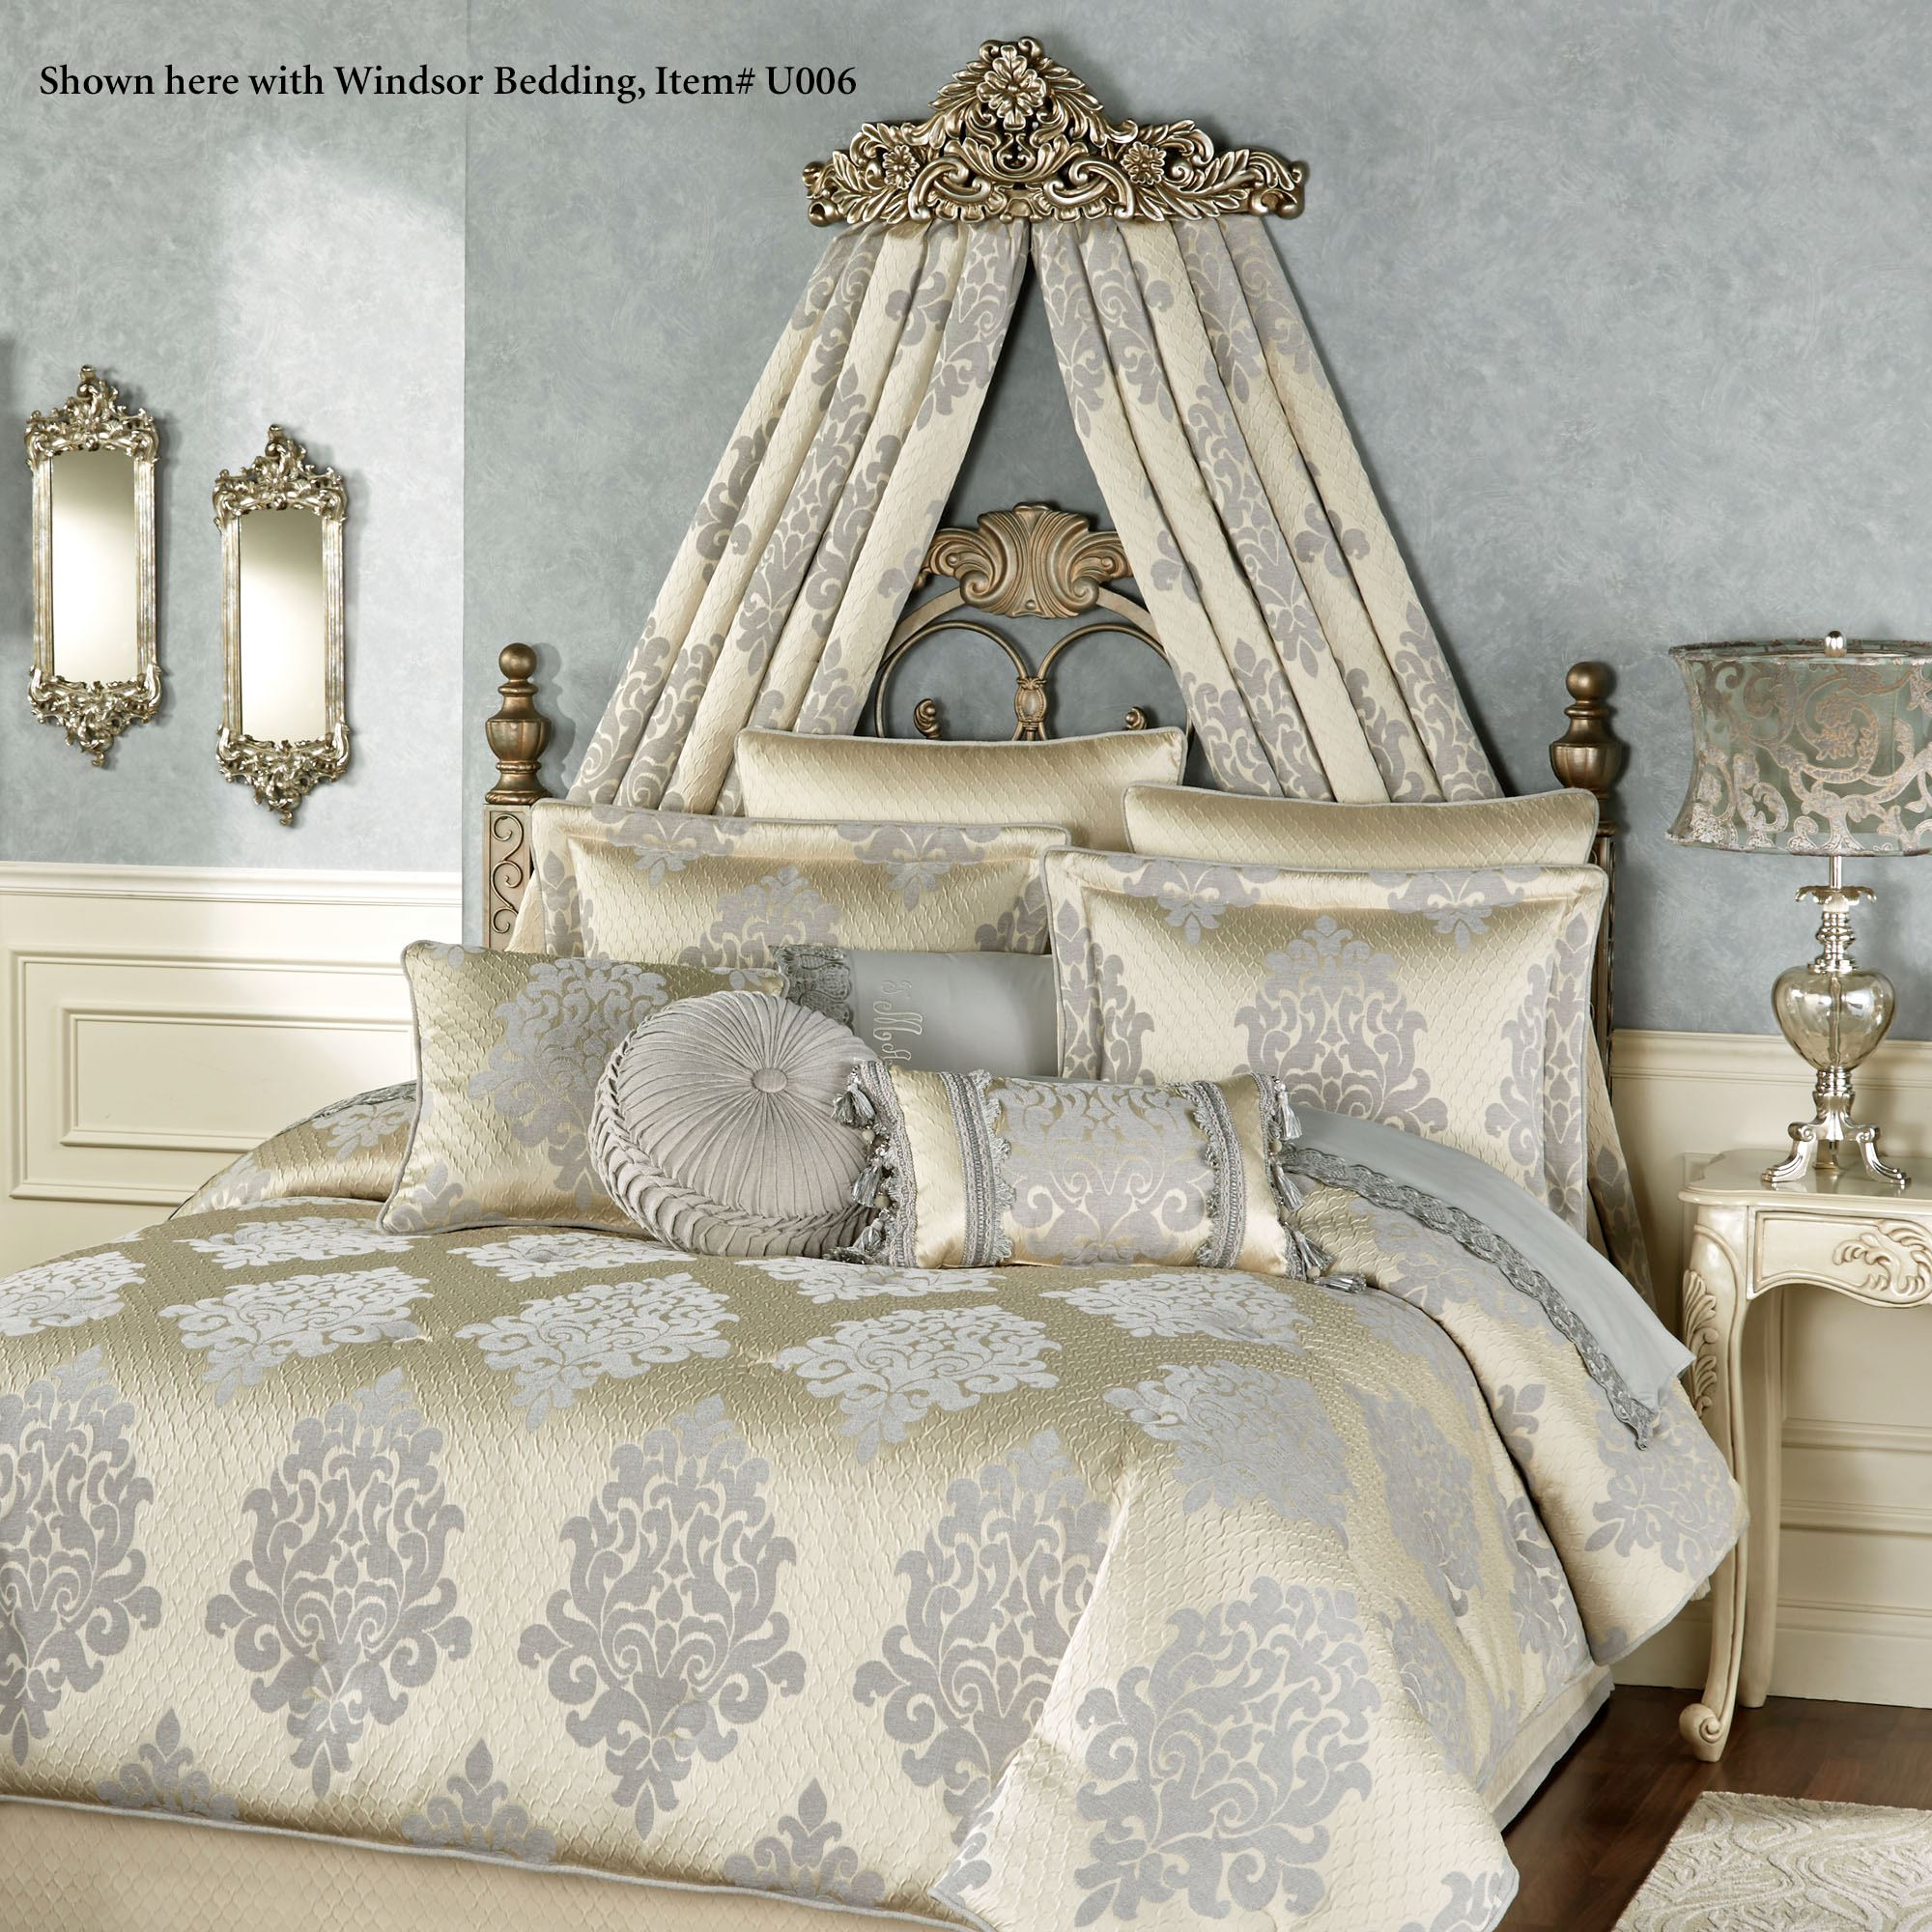 Vania Decorative Wall Teester Bed Crown on Wall Teester Bed Crown  id=72463